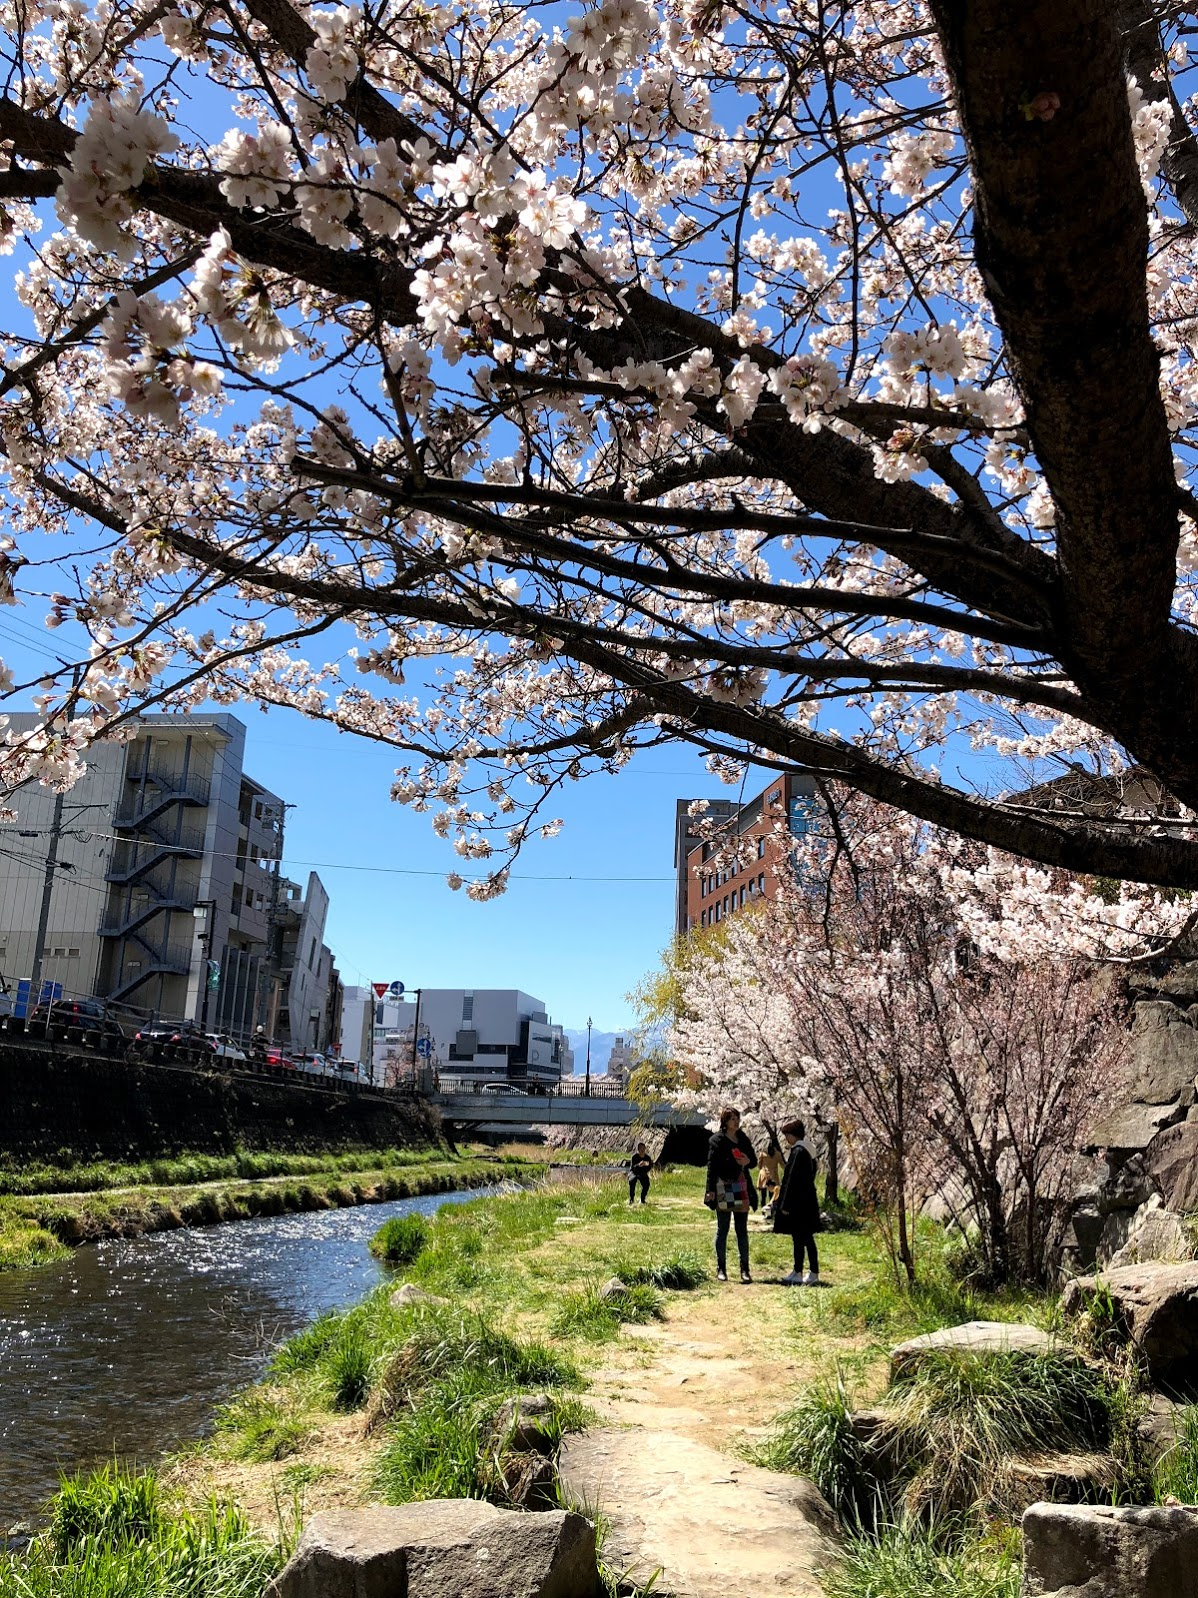 Some cherry blossoms trees along the Metoba River!